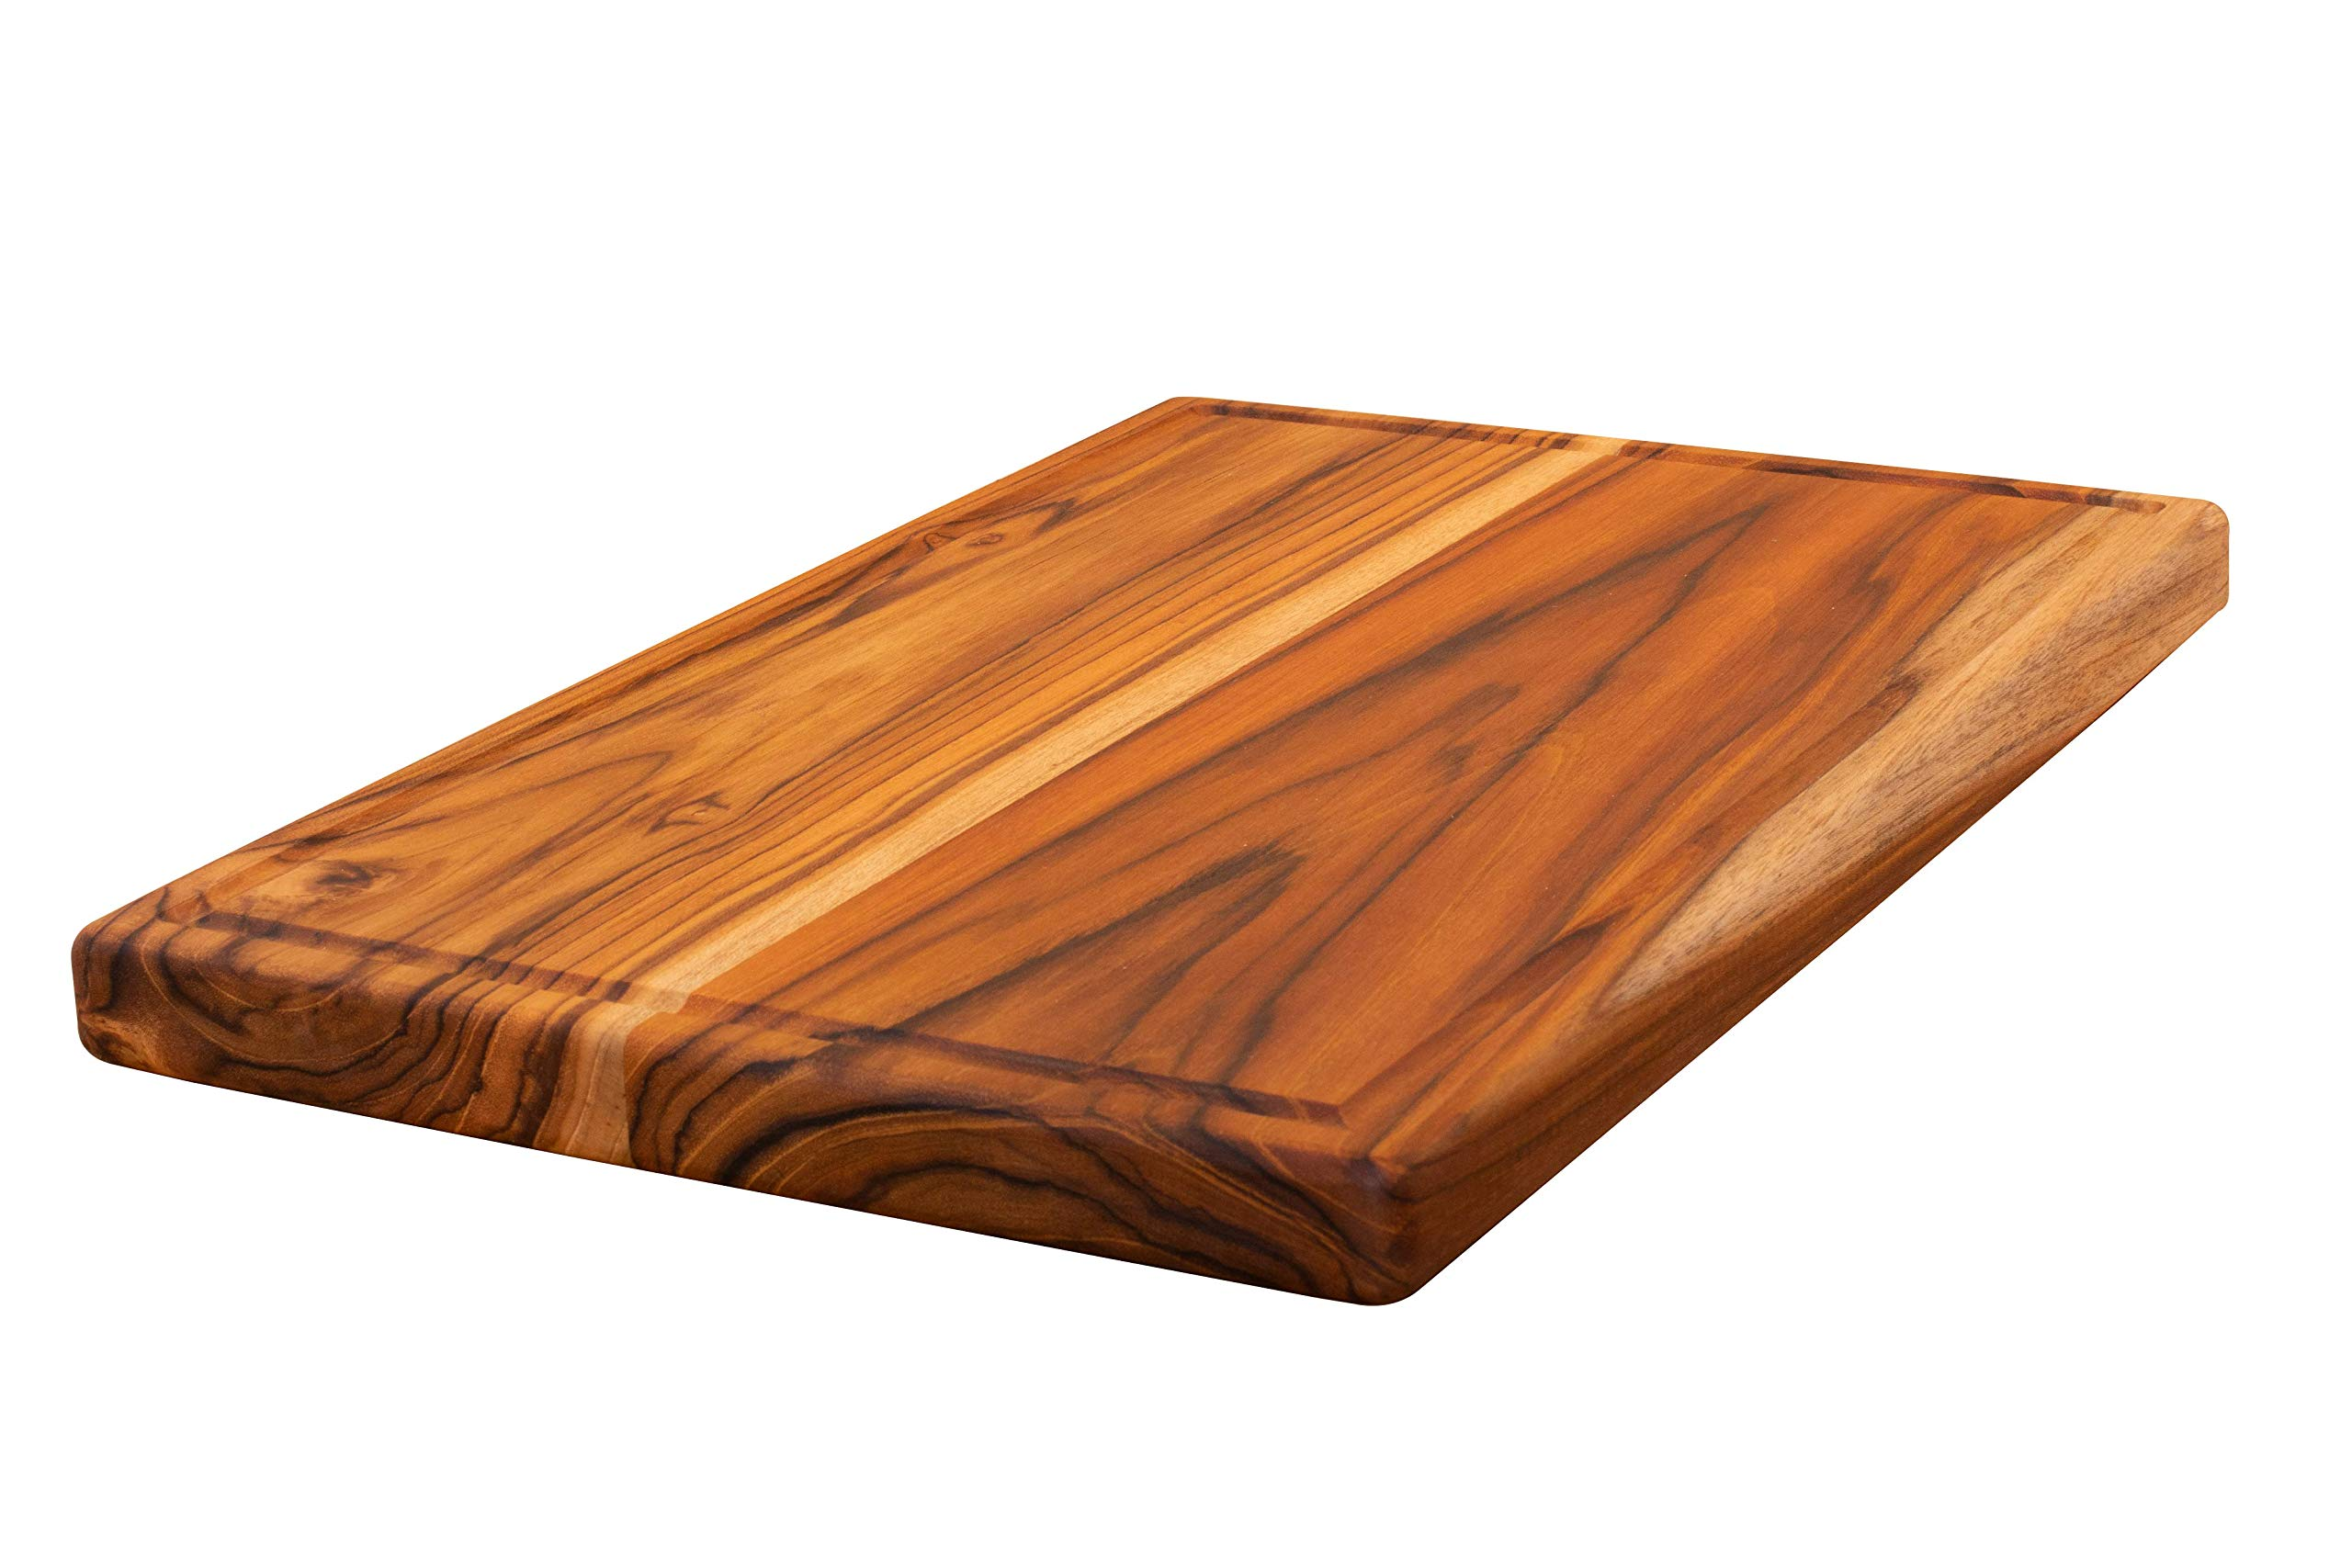 Large Reversible Teak Wood Cutting Board - Chopping Block and Hardwood Serving Tray with Juice Groove (17x11x1 Inches) by Ziruma